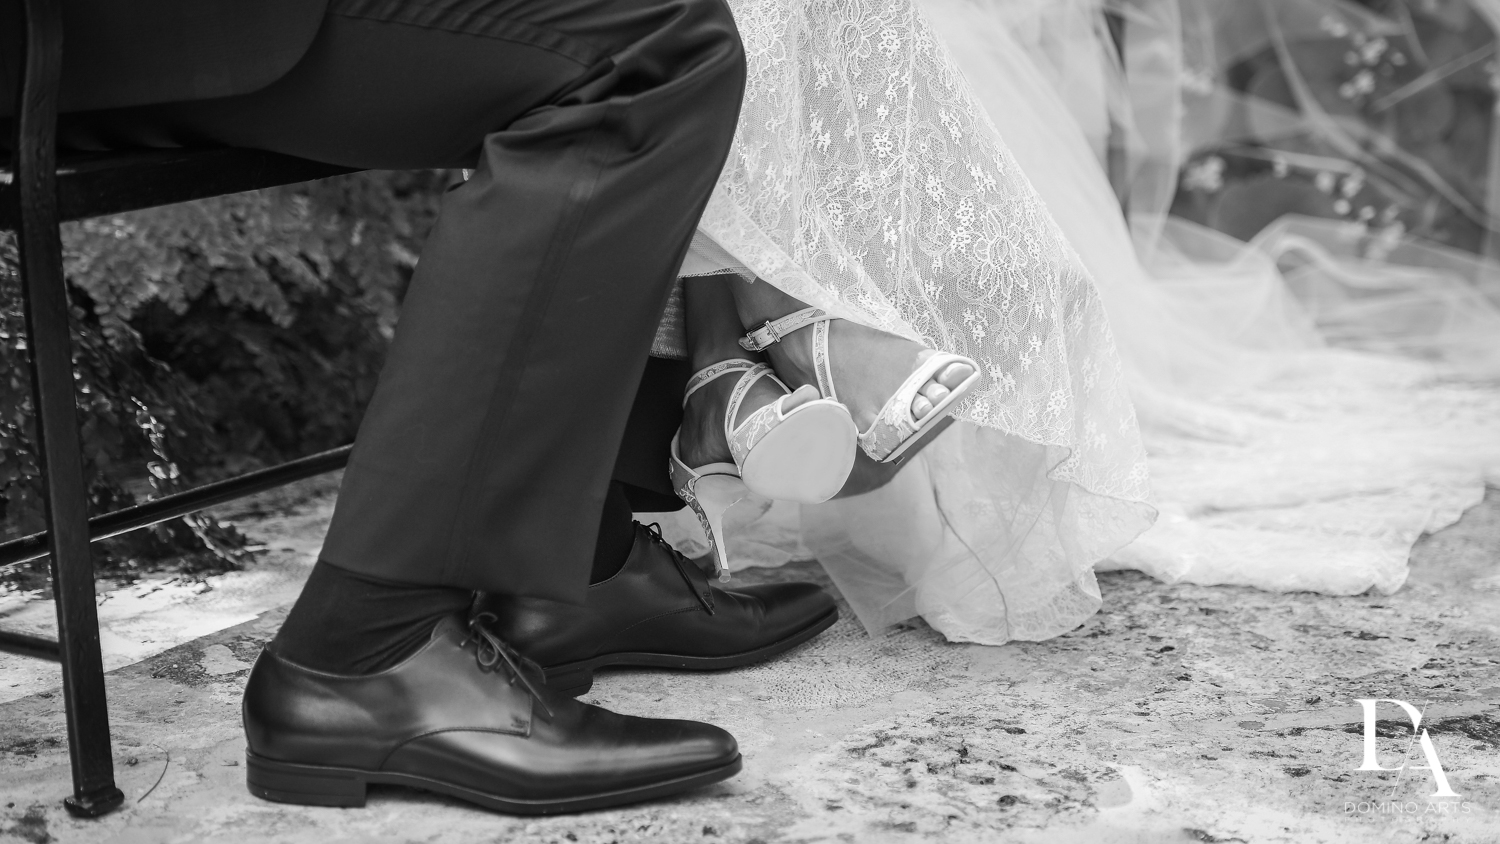 B&W photojournalism at Vintage Garden Wedding at Flagler Museum Palm Beach by Domino Arts Photography